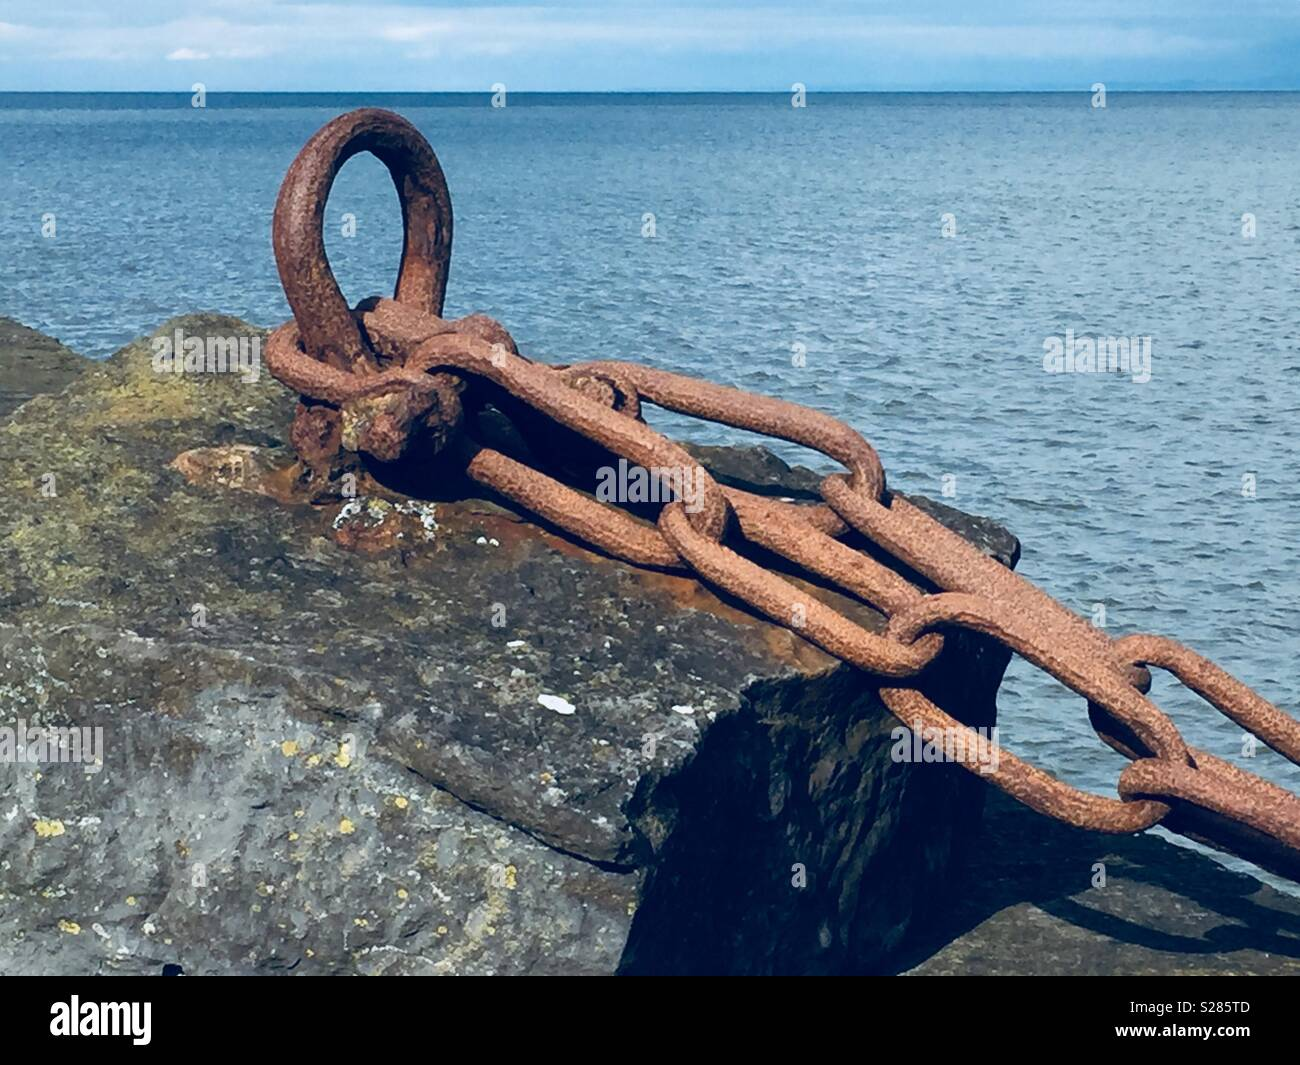 Boats Long Gone leaving chains to Rust - Stock Image